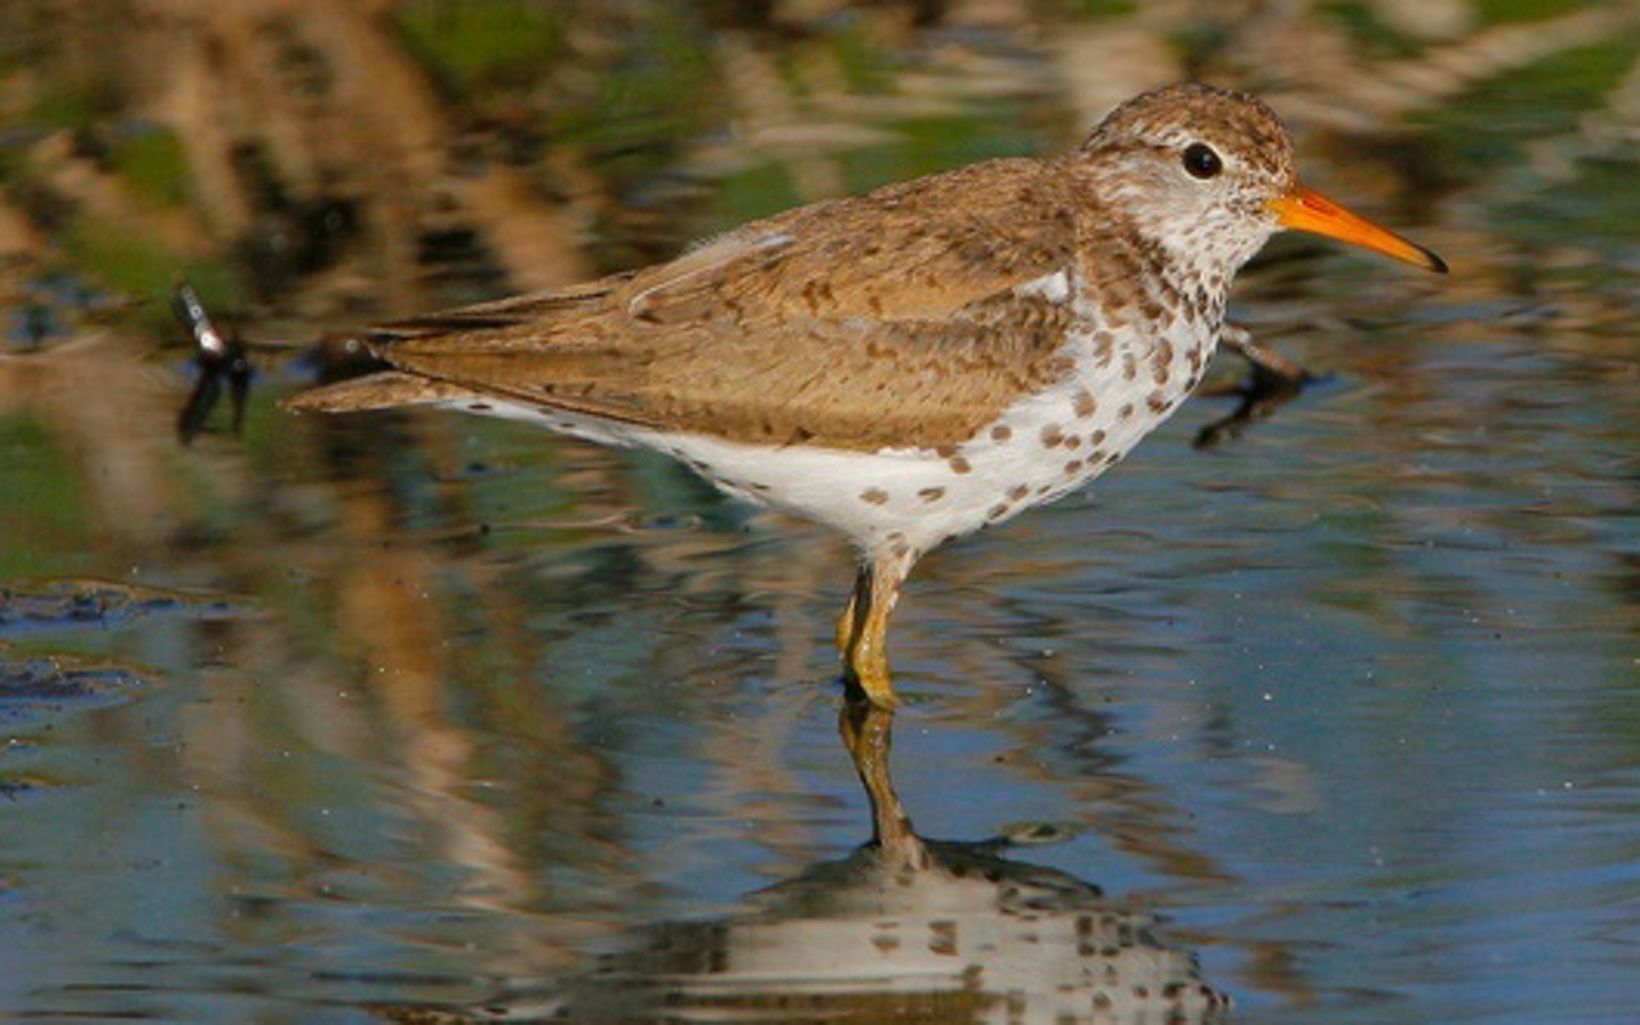 The many different sandpipers can be hard to identify, but the eponymous markings of the spotted sandpiper (Actitis macularius) make this one a bit easier to recognize.